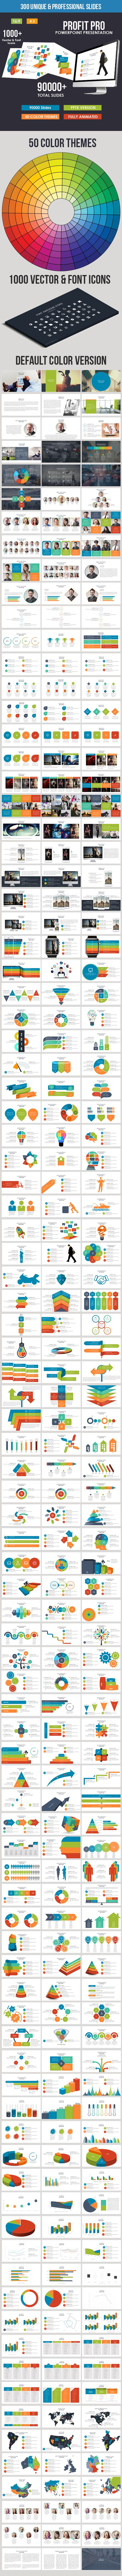 Profit Pro PowerPoint Presentation Template. Download here: https://graphicriver.net/item/profit-pro-powerpoint-presentation-template/17606102?ref=ksioks